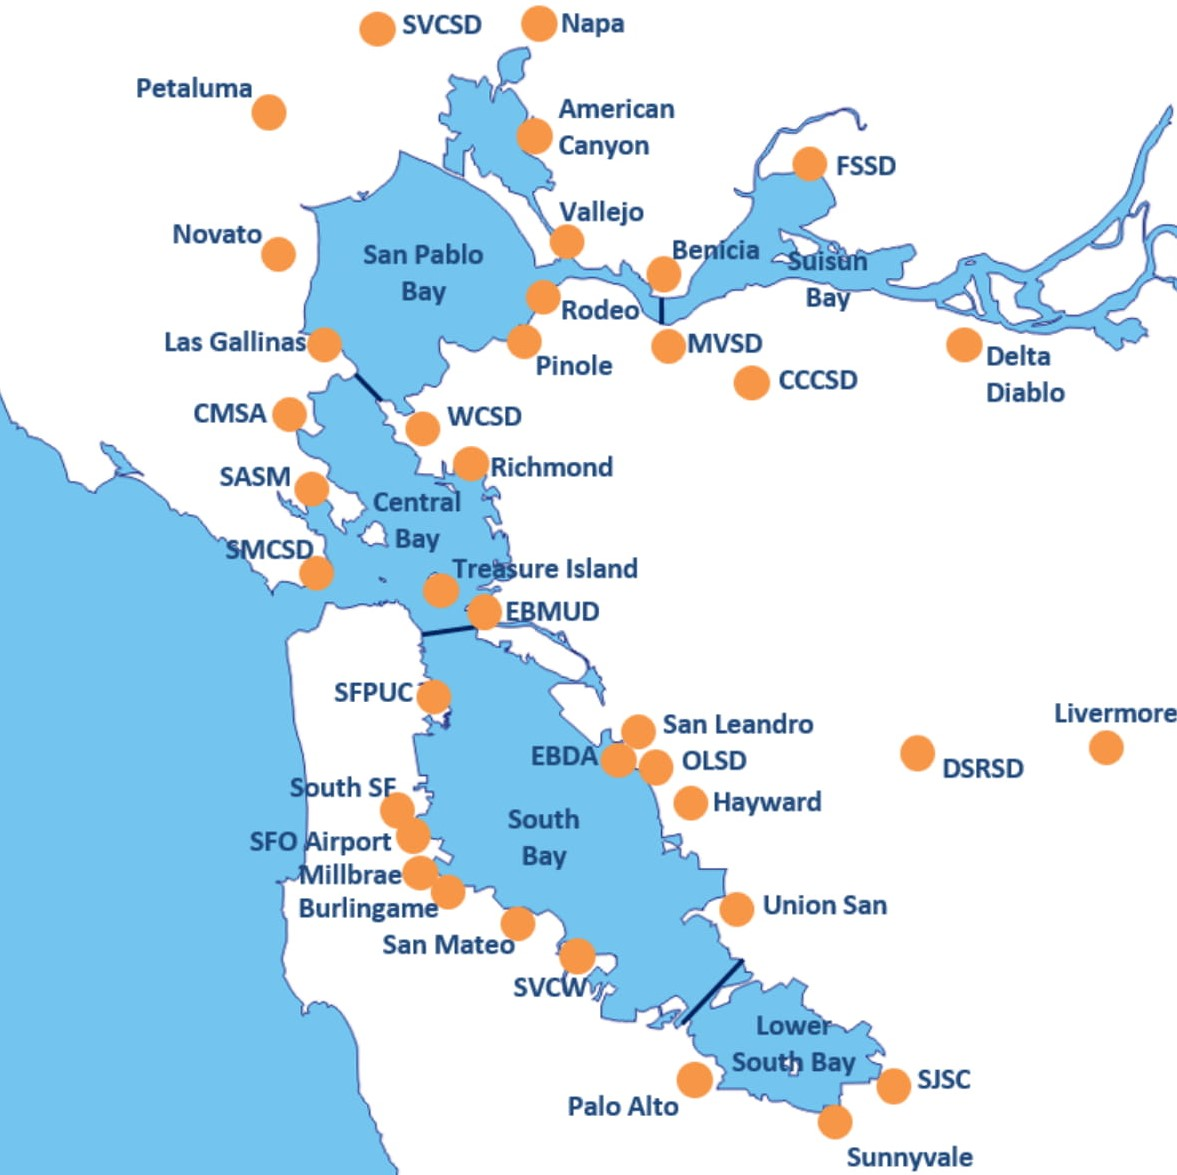 Subembayment Map Baywise San francisco bay area maps of best things to do. subembayment map baywise